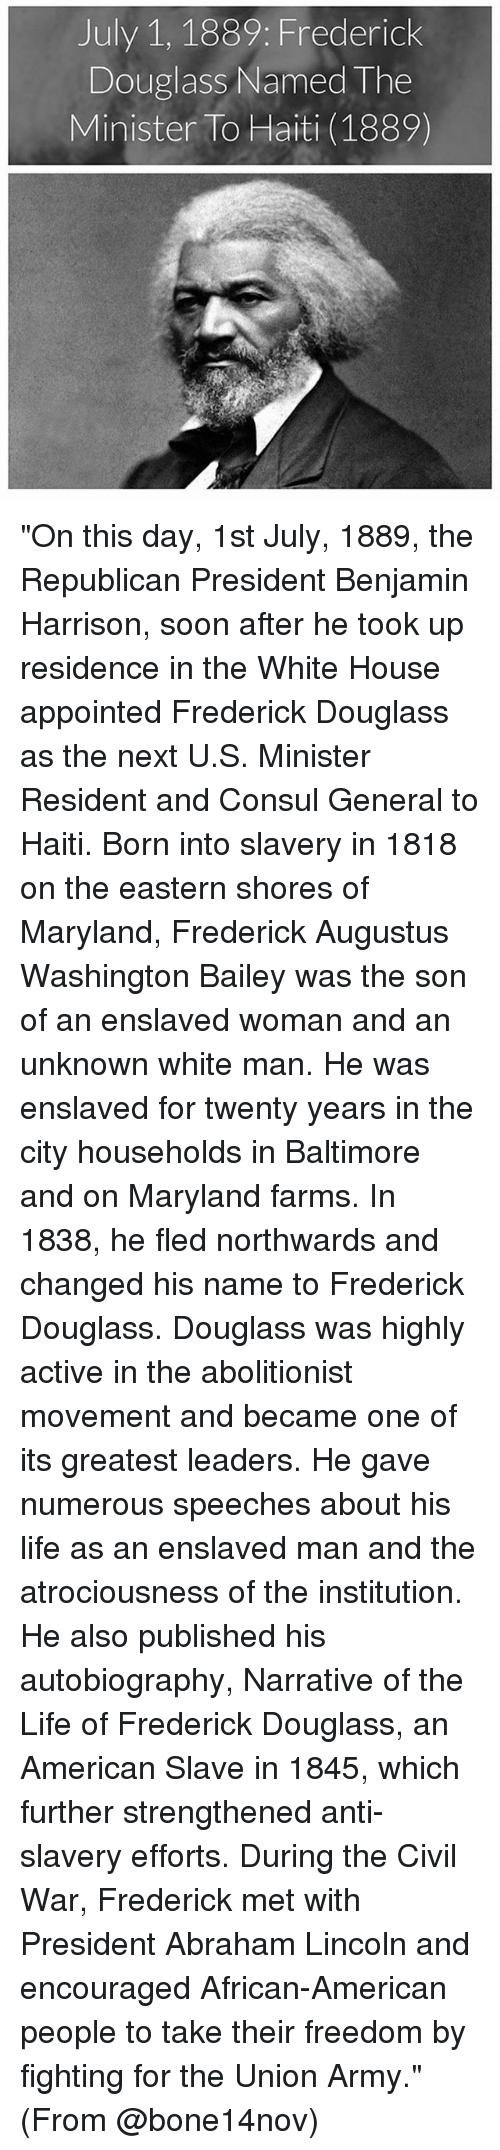 a biography of the early life and abolitionist activities of fredriclk augustus washington bailey